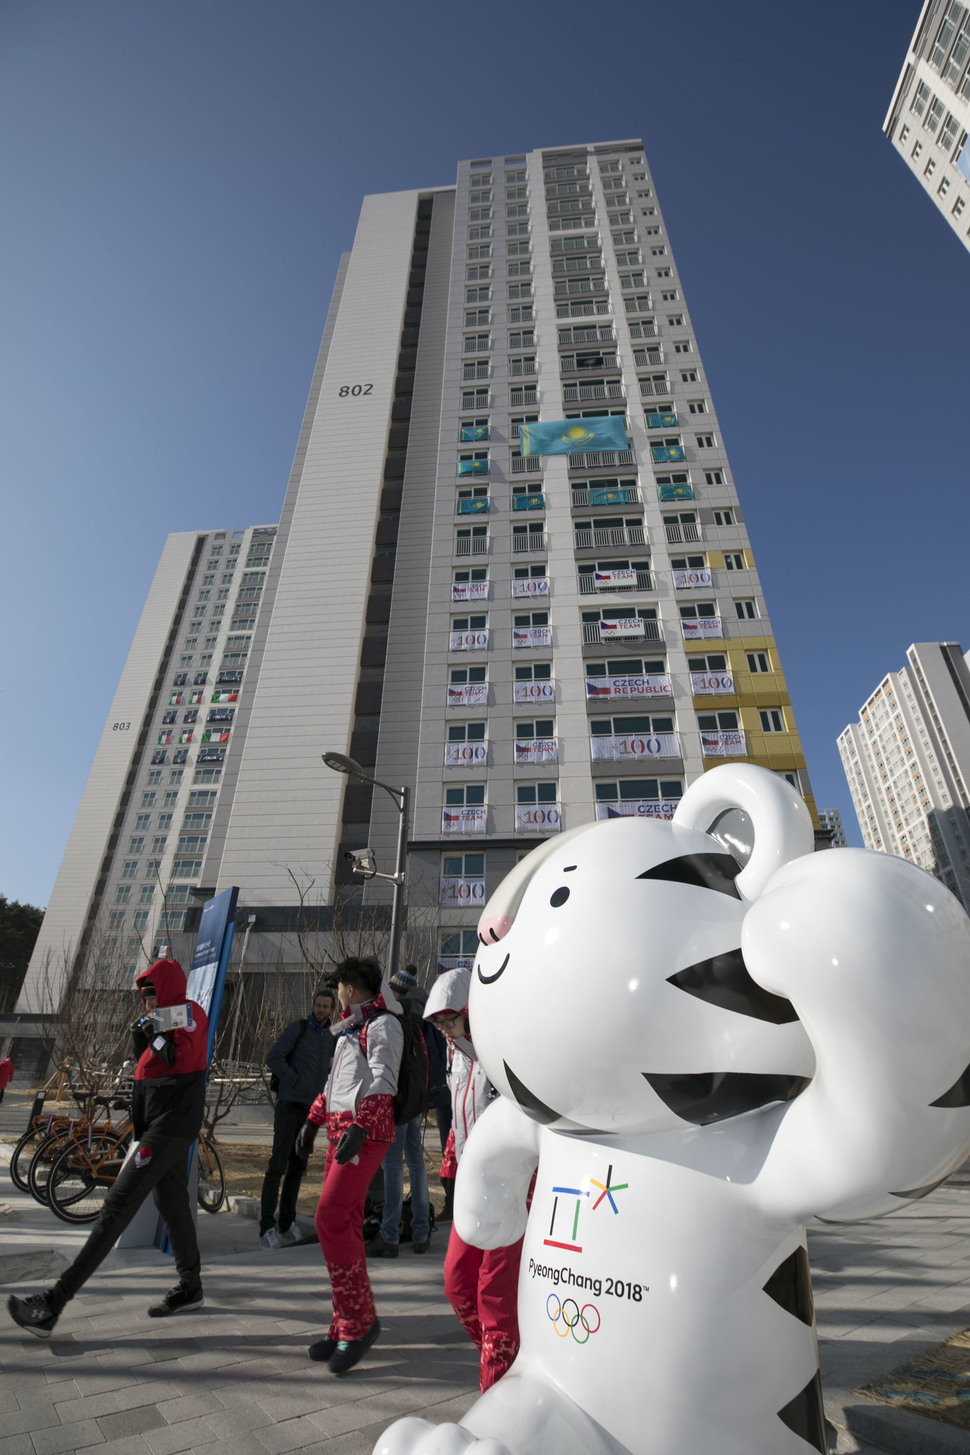 Polyclinic No. 8, Olympic Village (reviews)